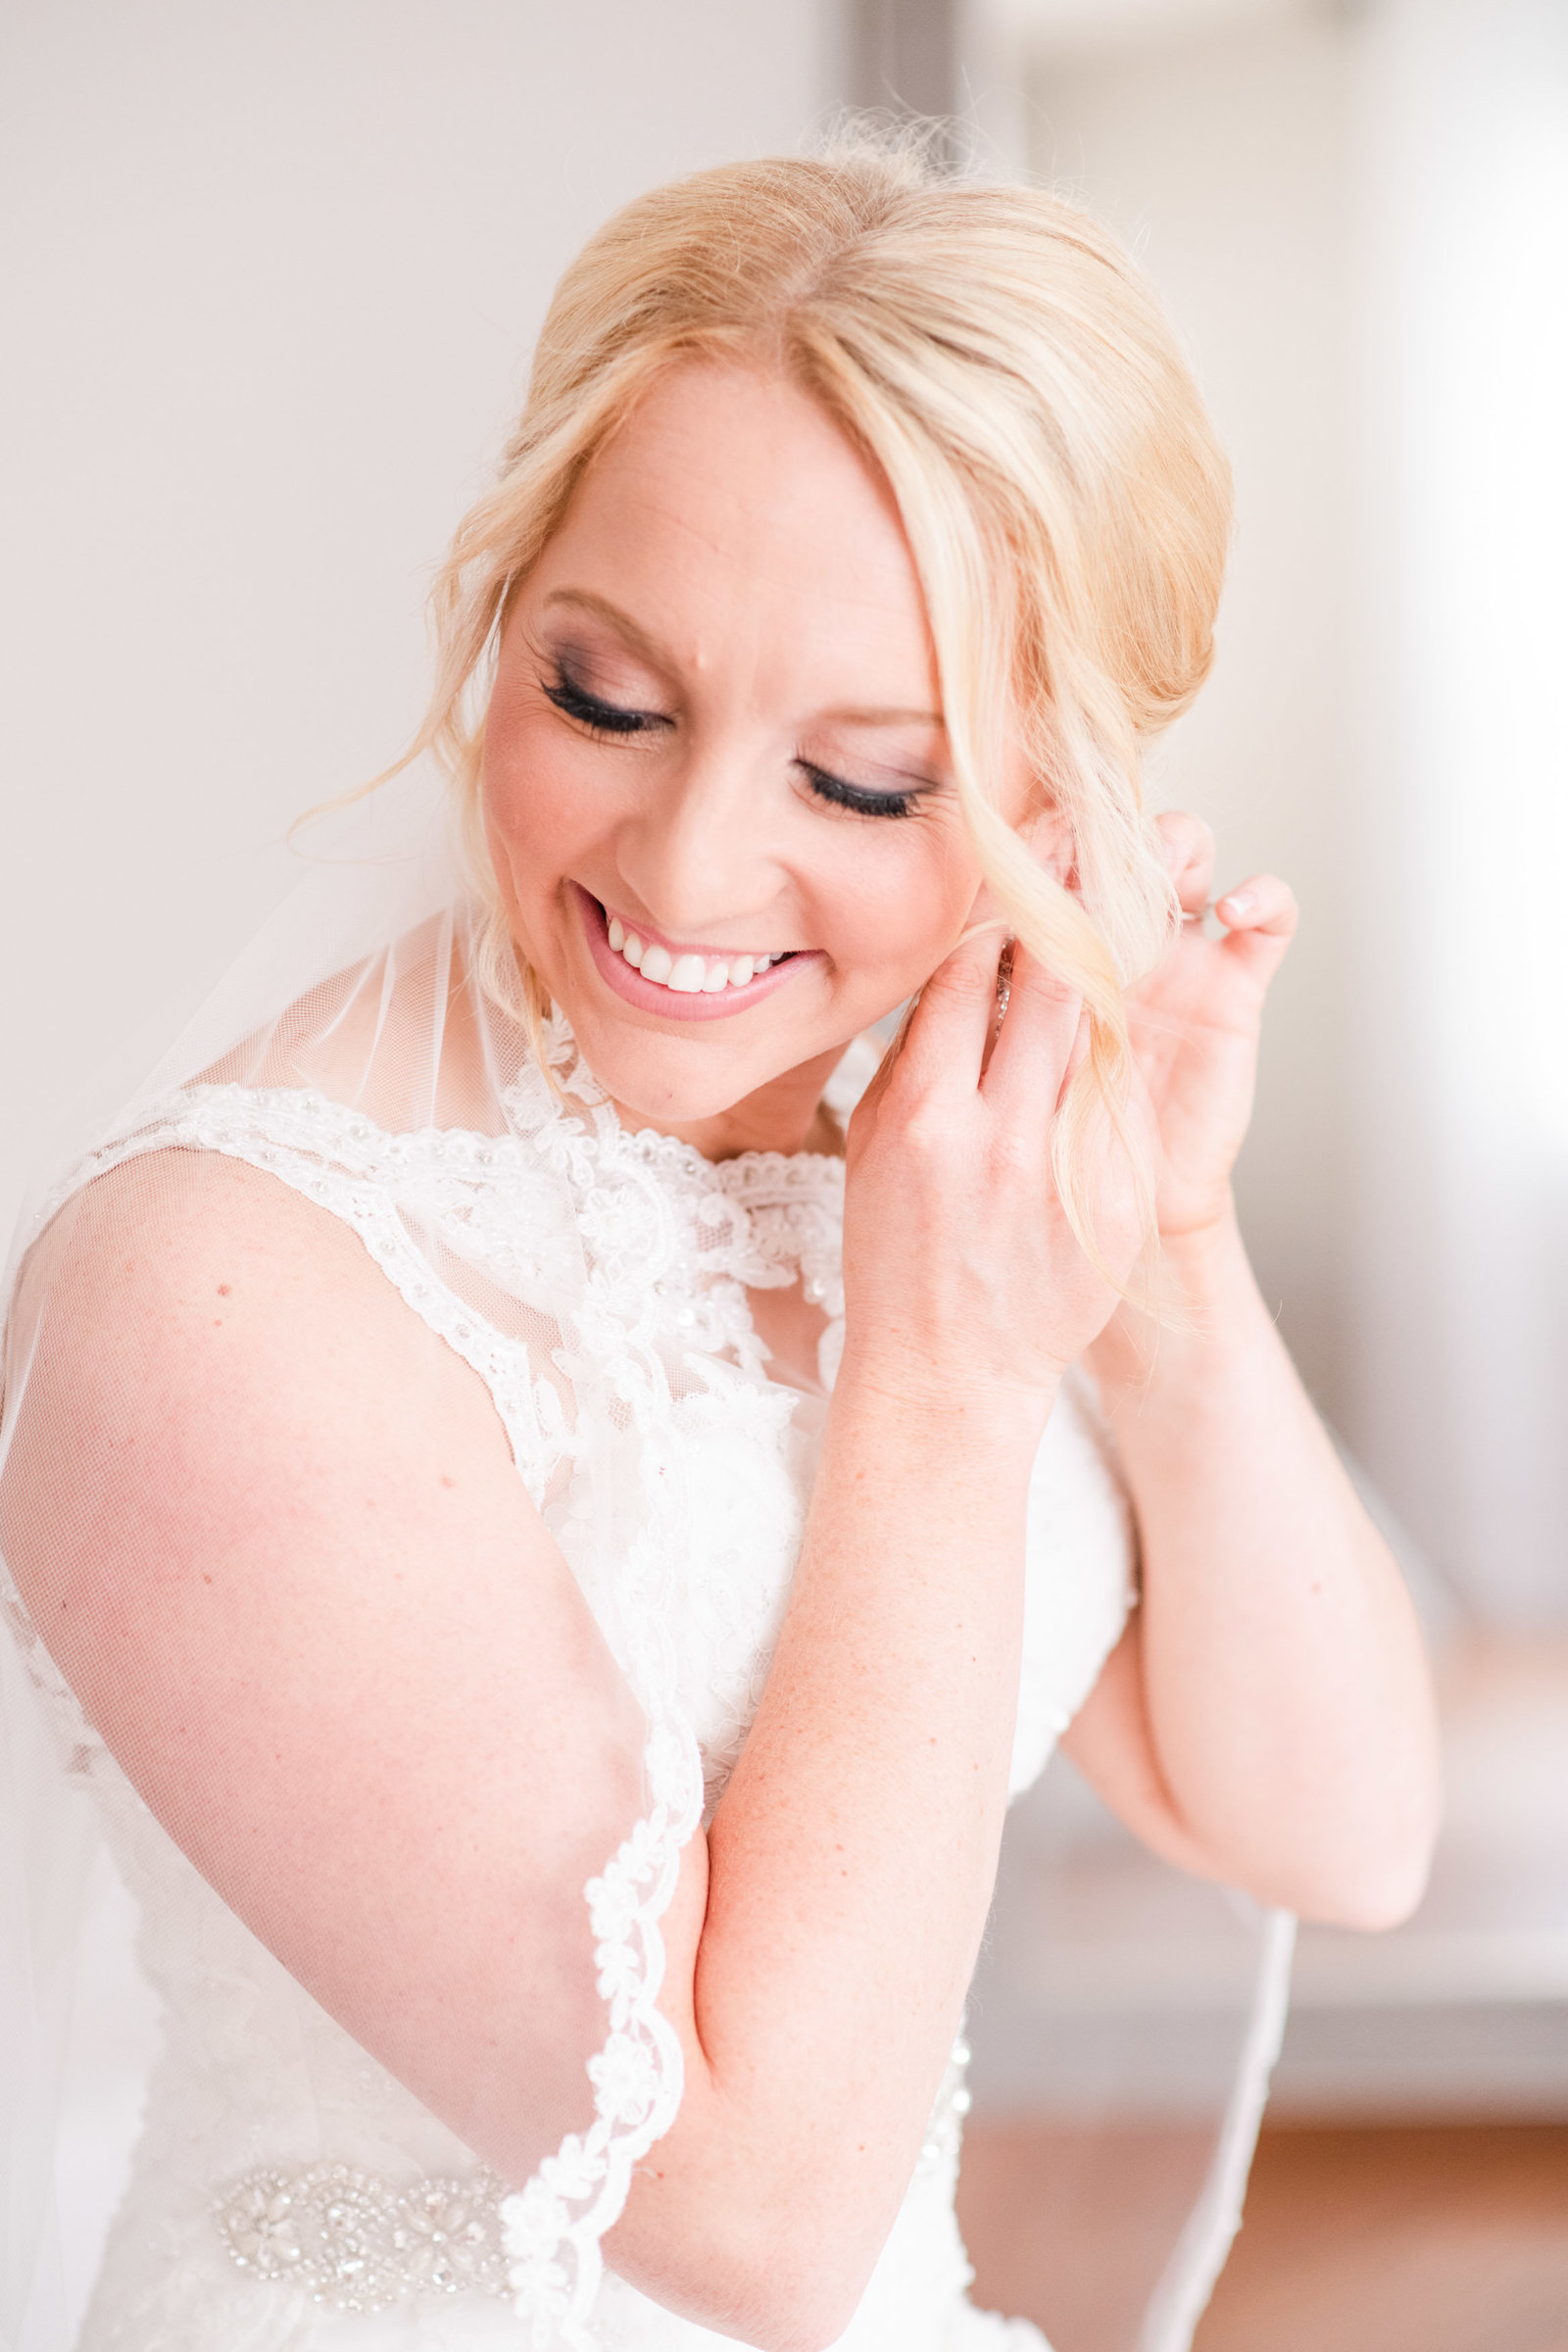 bride putting on earrings while getting ready for wedding